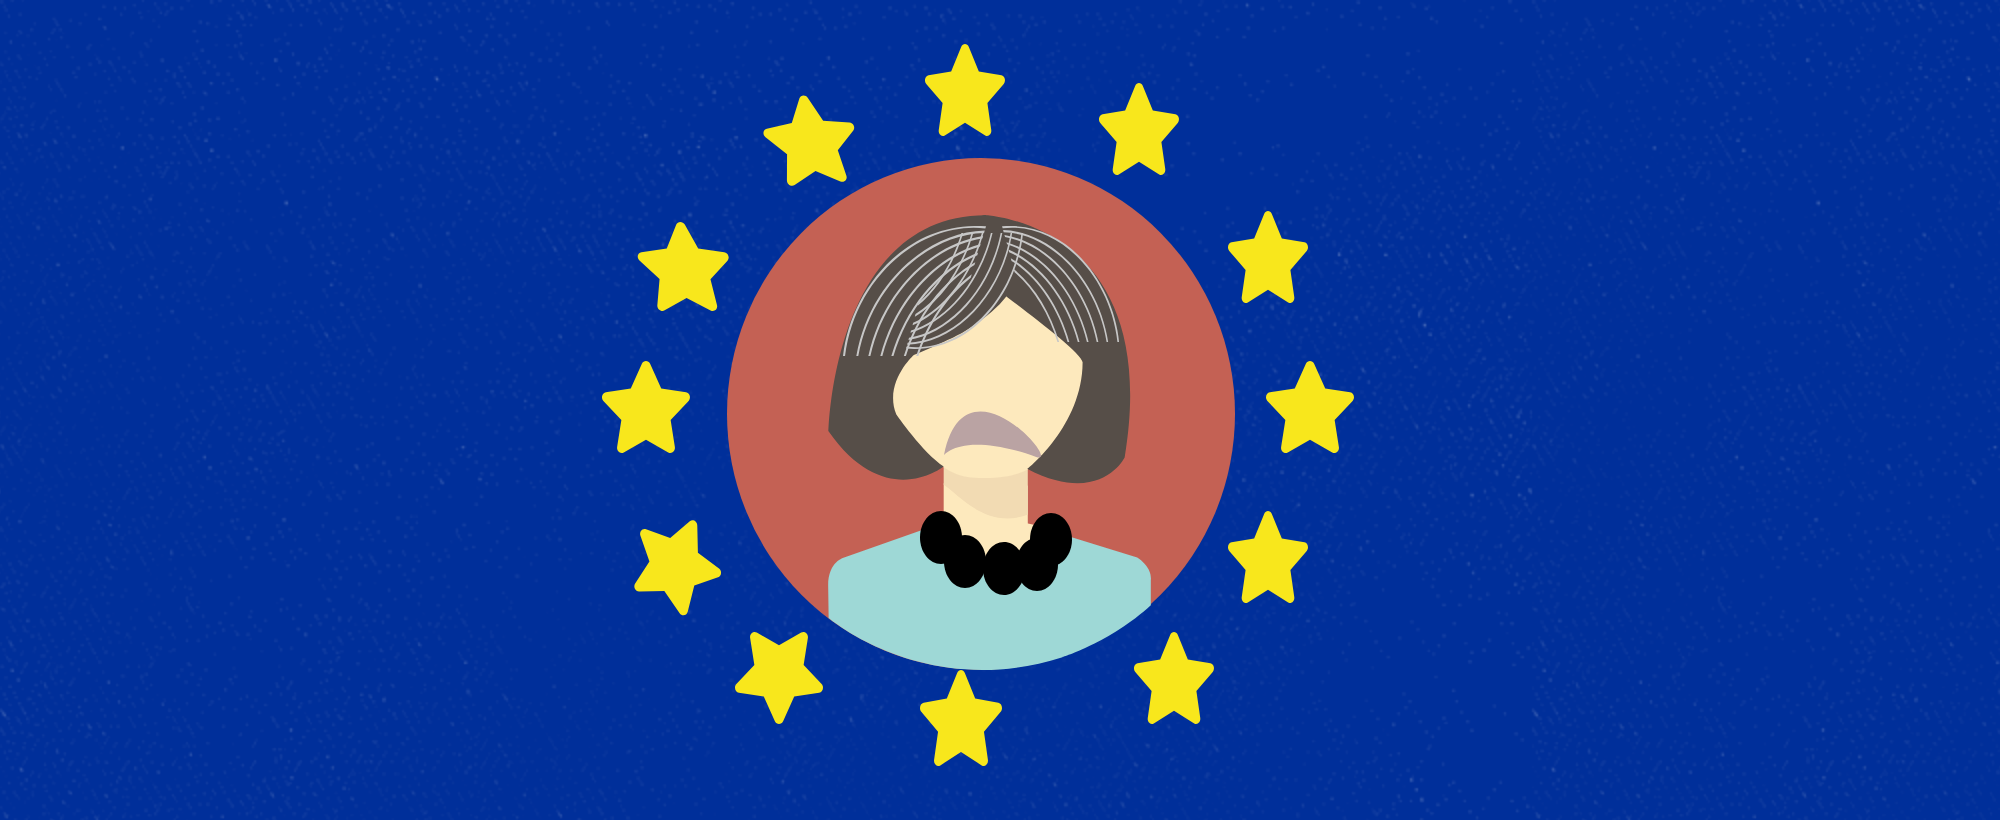 brexit-bored-co_31679450-e1533295681167.png